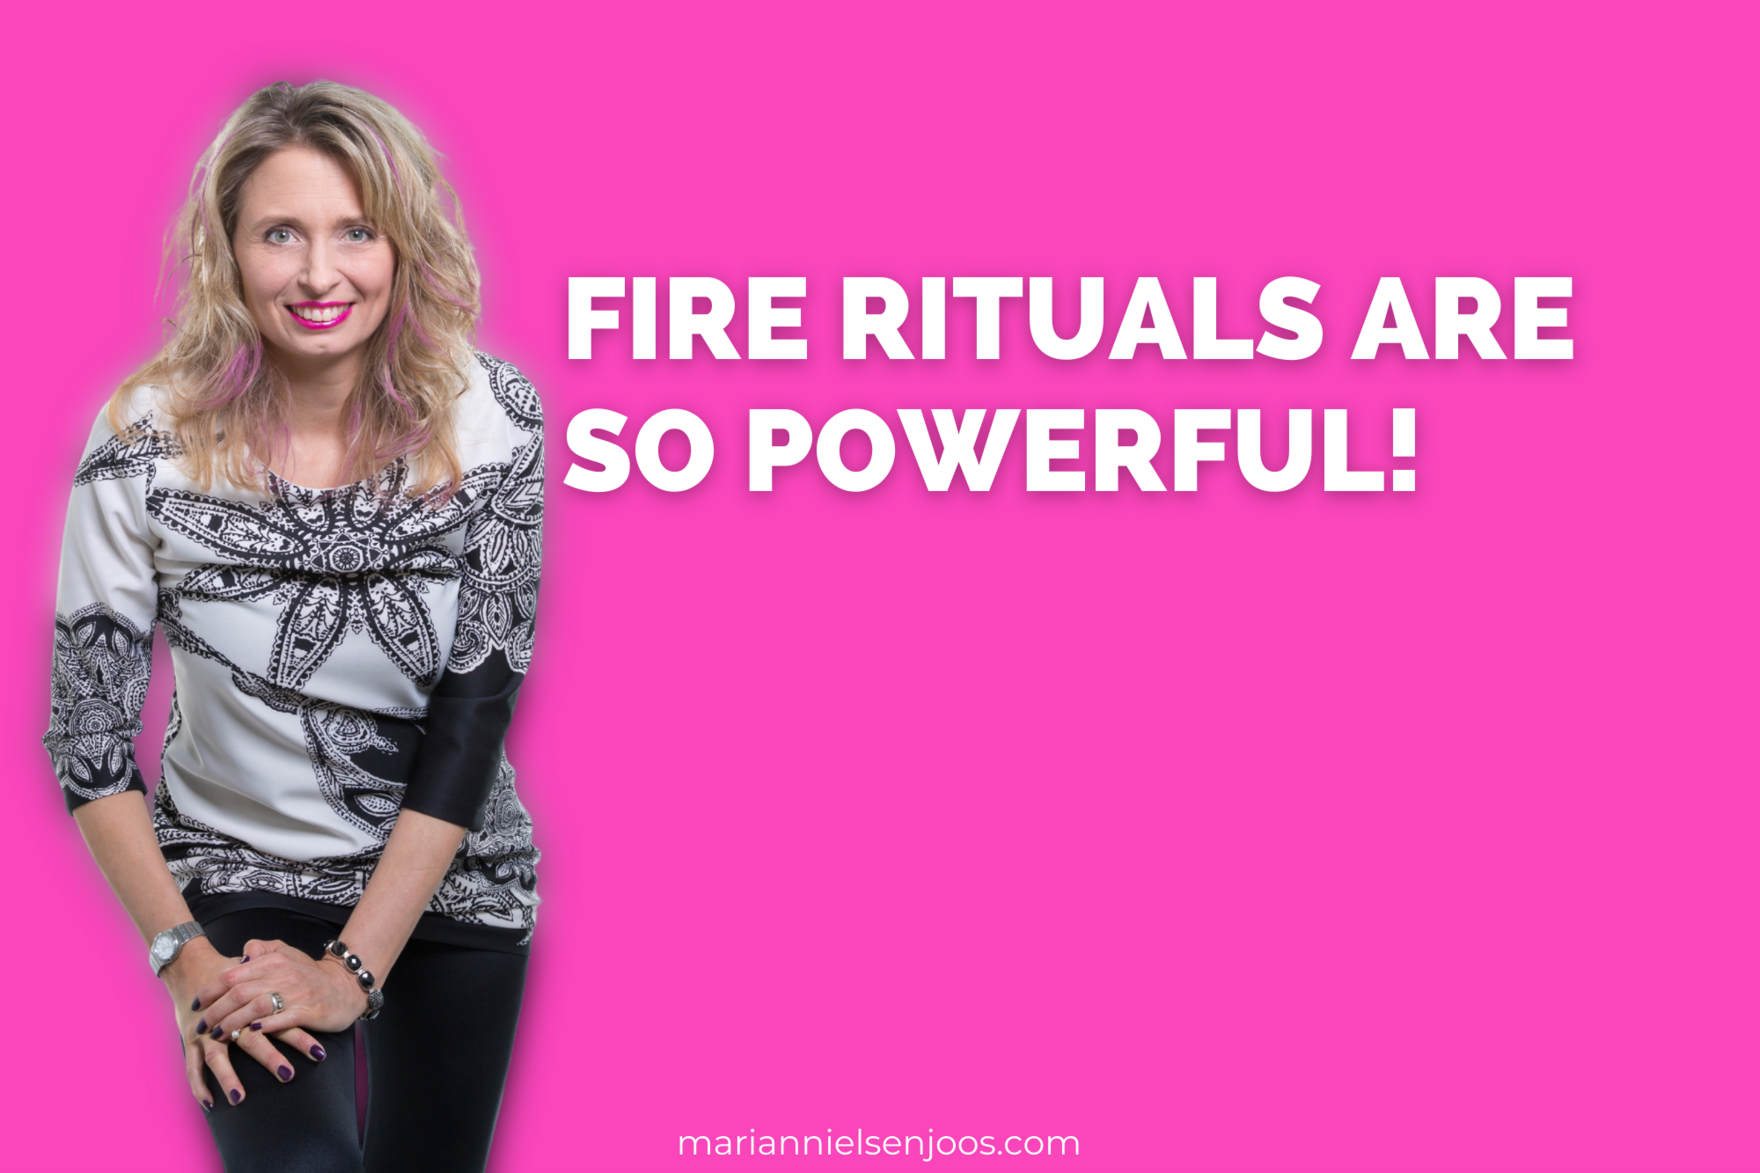 fire rituals are so powerful